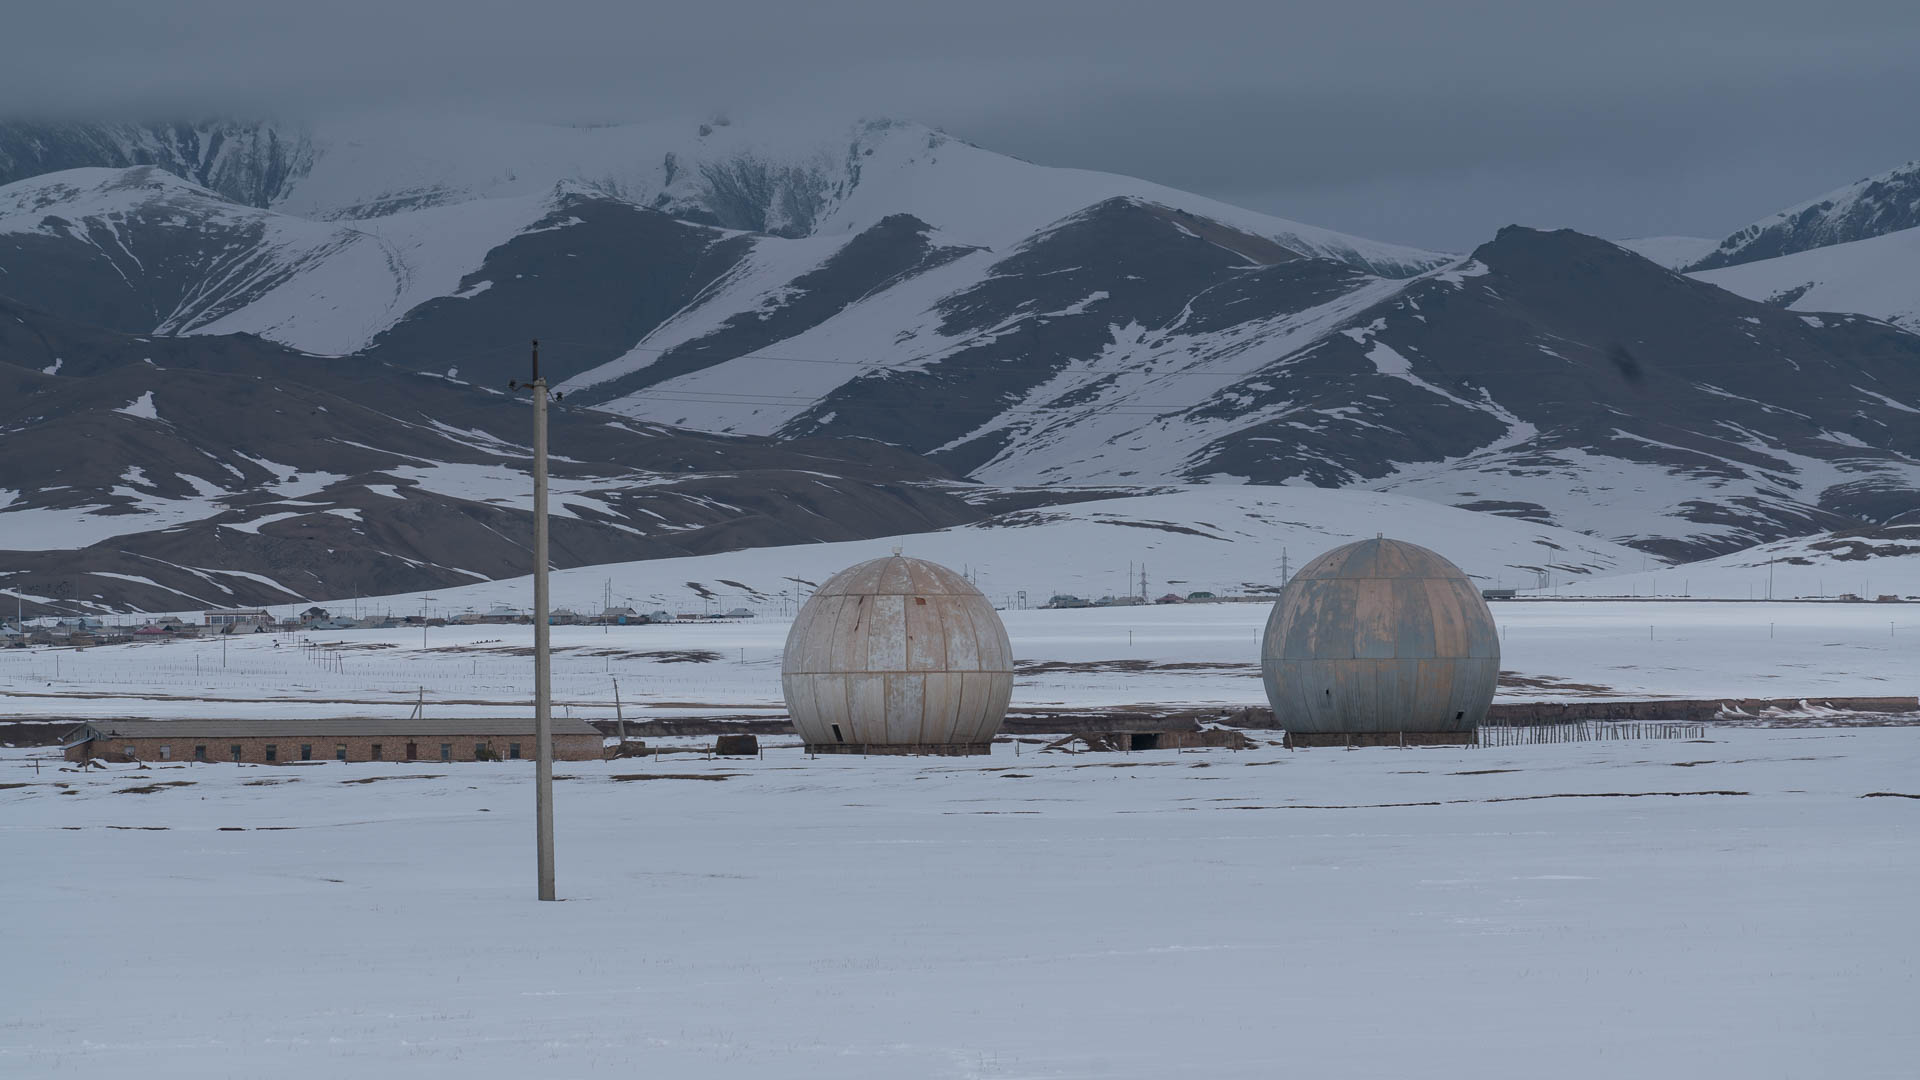 Soviet Radar stations in the Alai Valley, Kyrgyzstan. Photo: Martin Saxer, 2018.